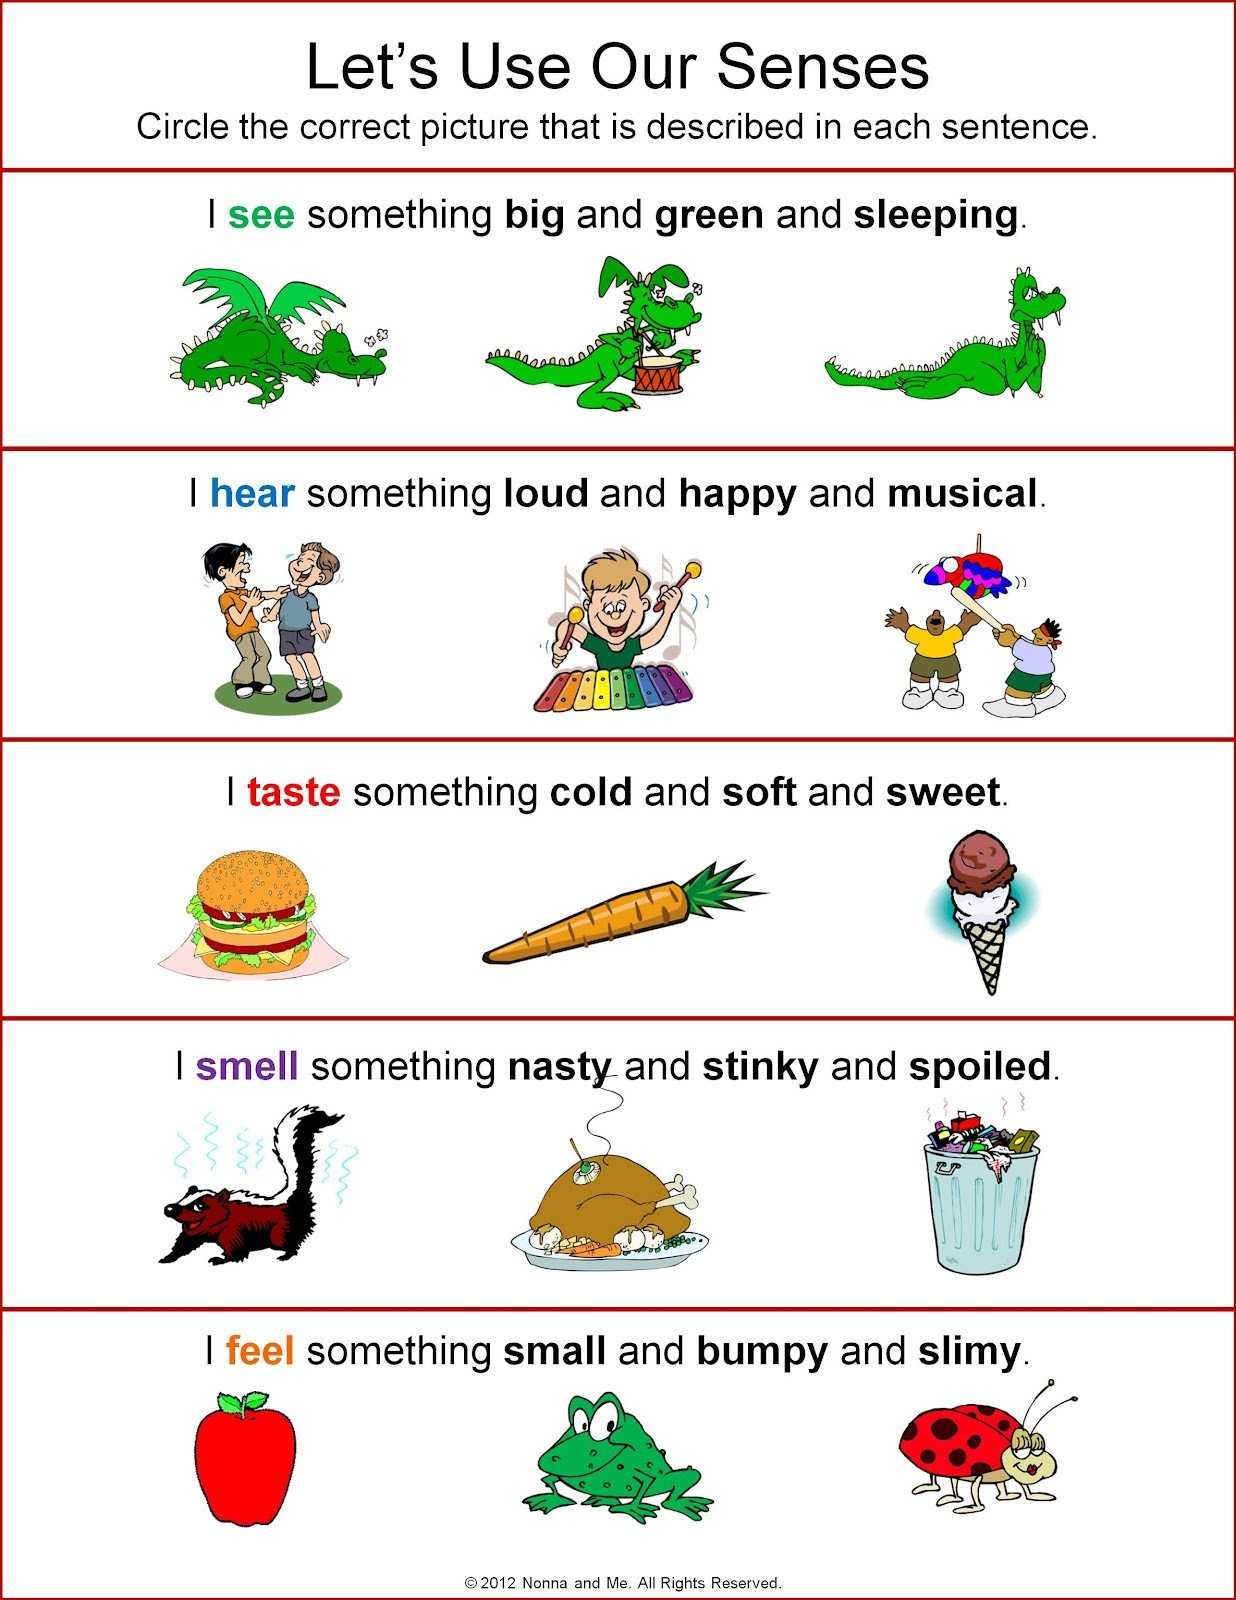 5 Senses Worksheets Preschool Five Sense Worksheet New 75 Five Senses Activities and